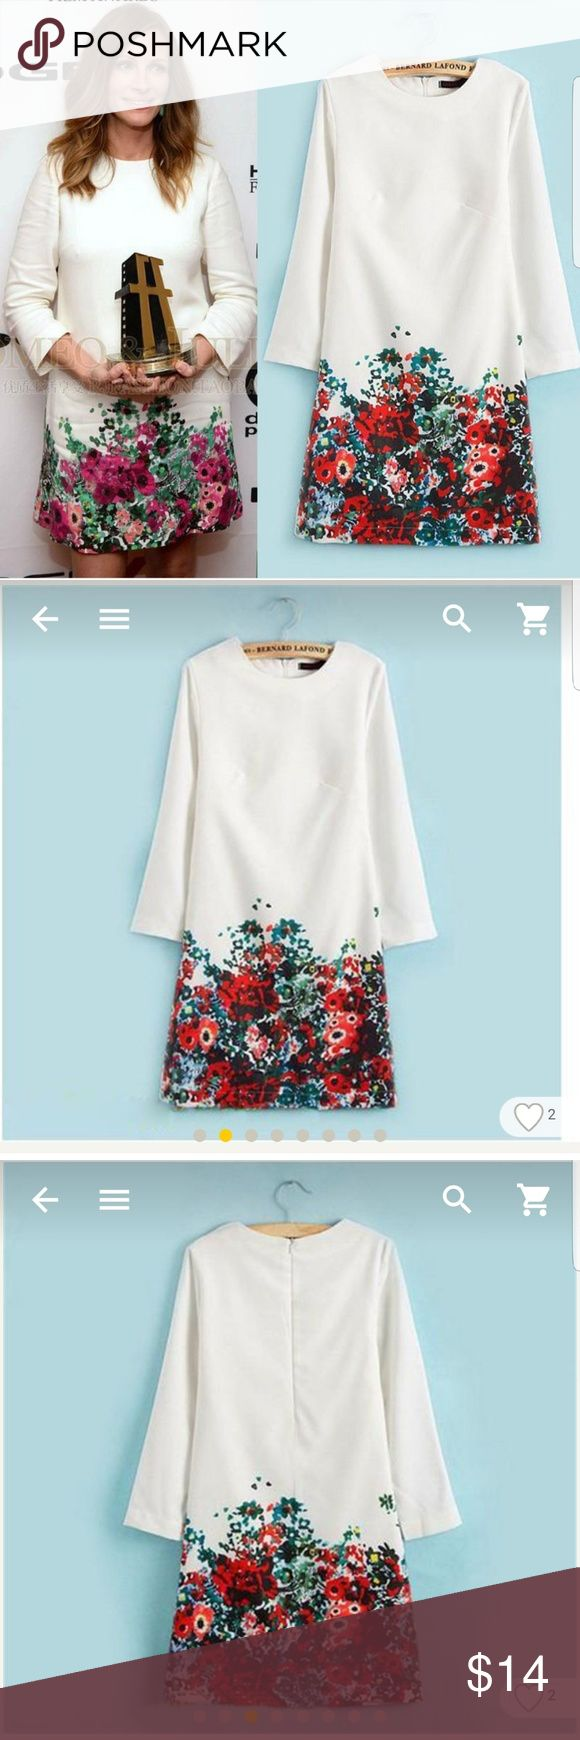 Celebrity inspered smart casual dress Spring and summer white elegant dress with a bright flower pattern. Fully lined, zipper closure, long sleeves, but lightweight material. Dresses Mini